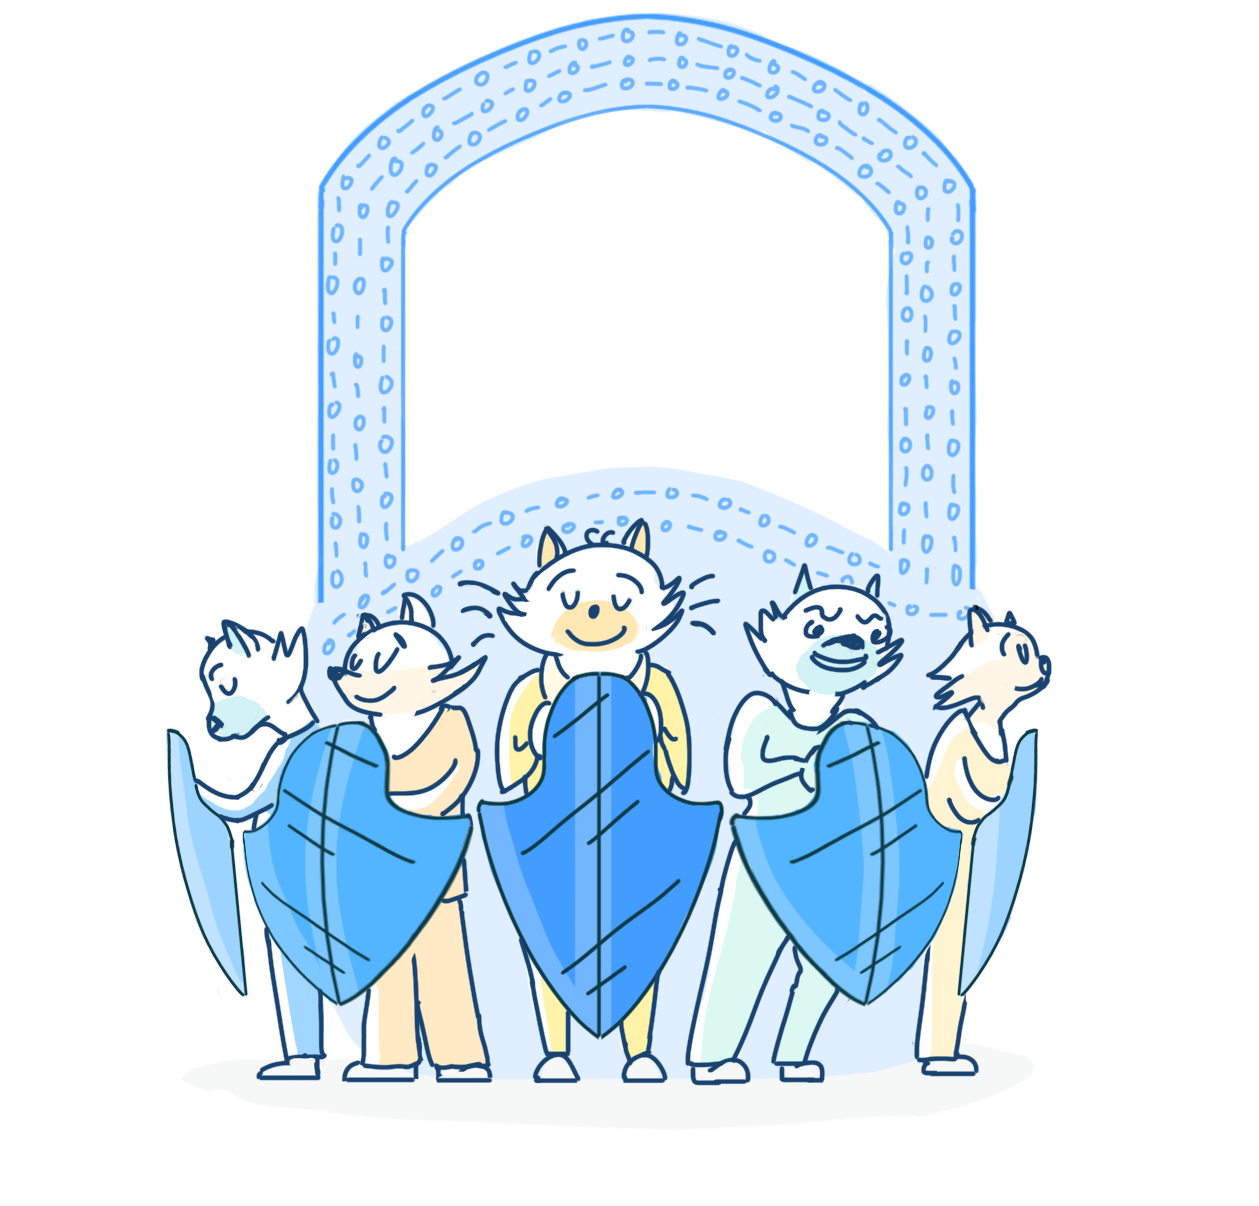 Frustrated clipart state mind. Our security so from